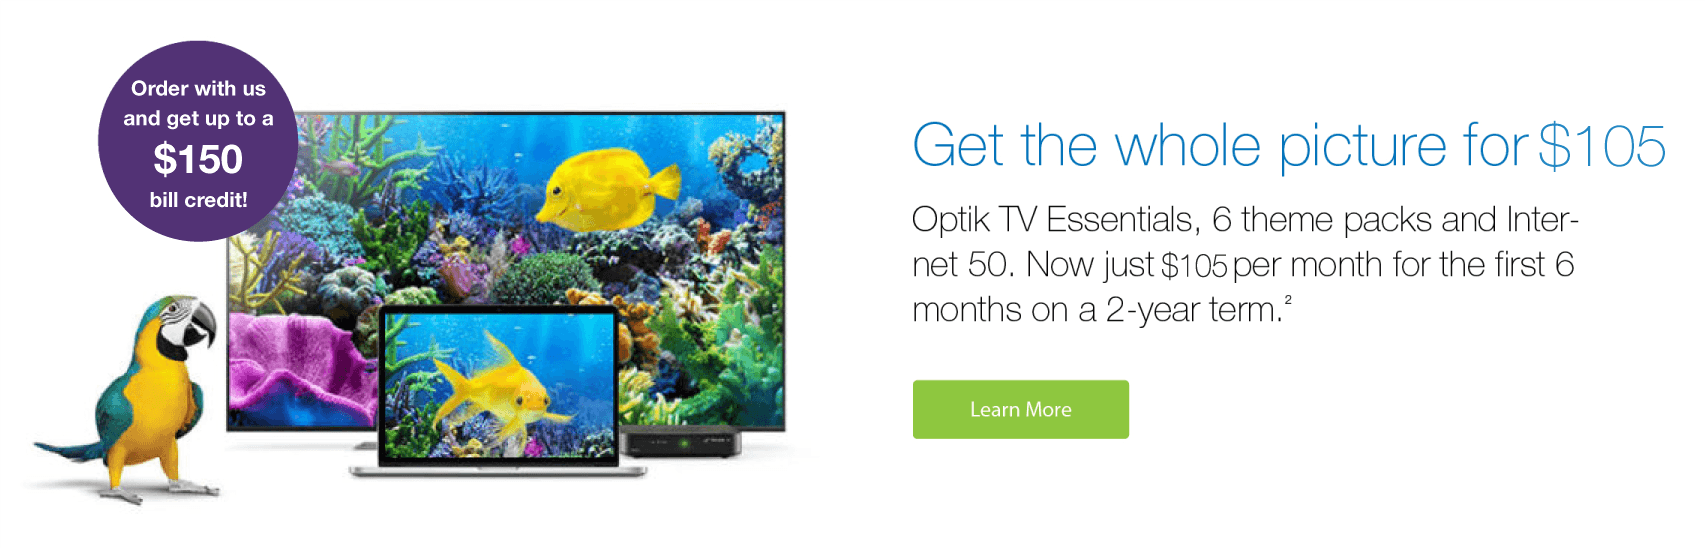 Optik TV & Internet Bundle